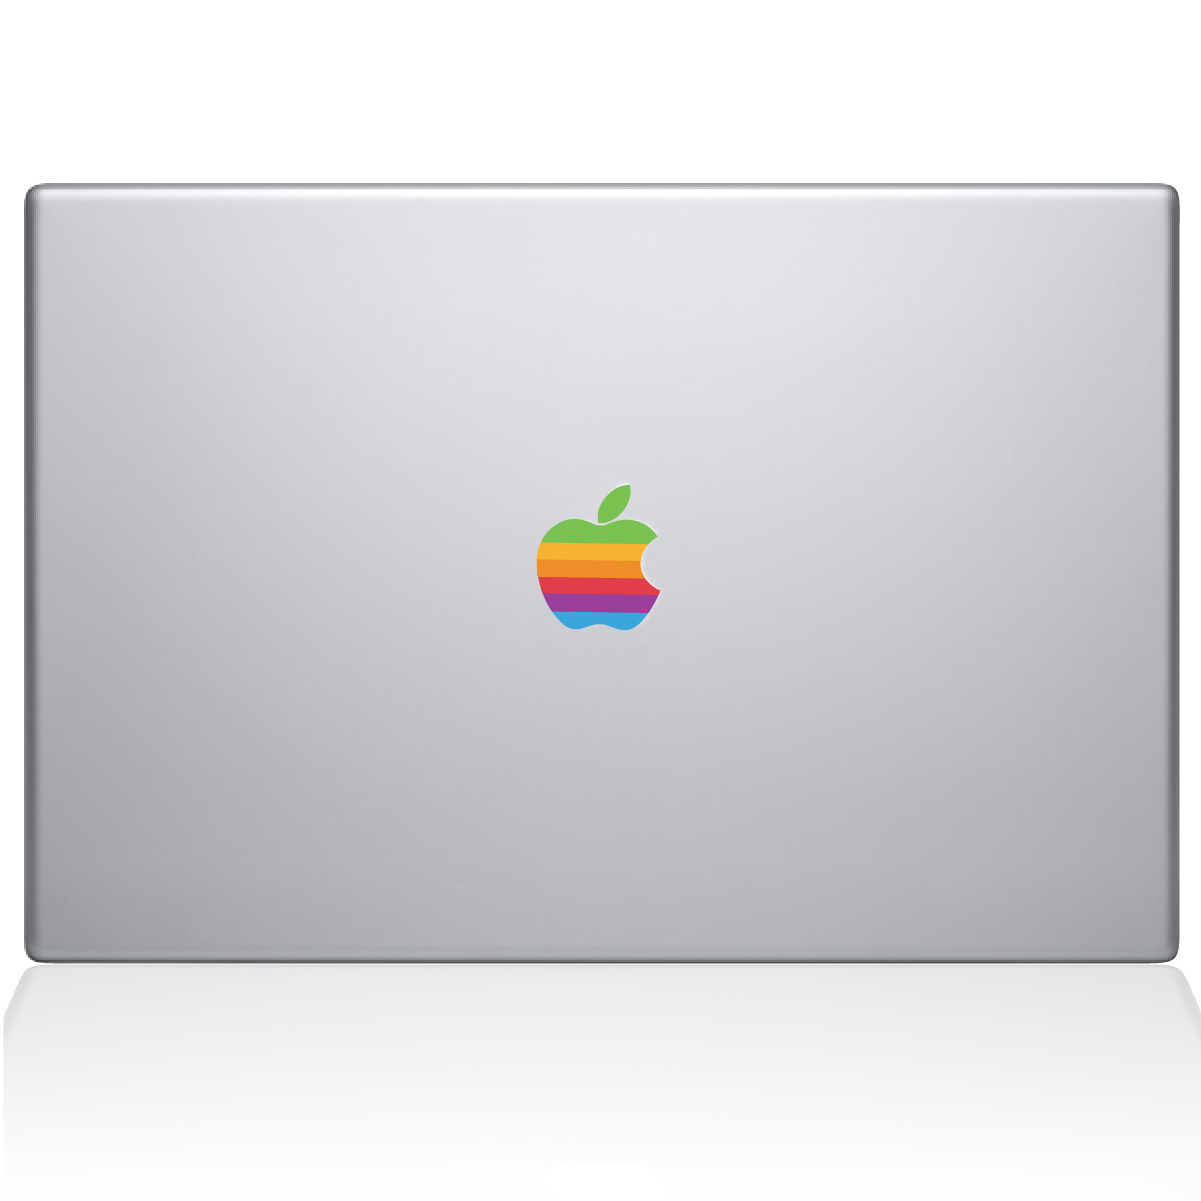 Retro Apple logo Macbook Decal.